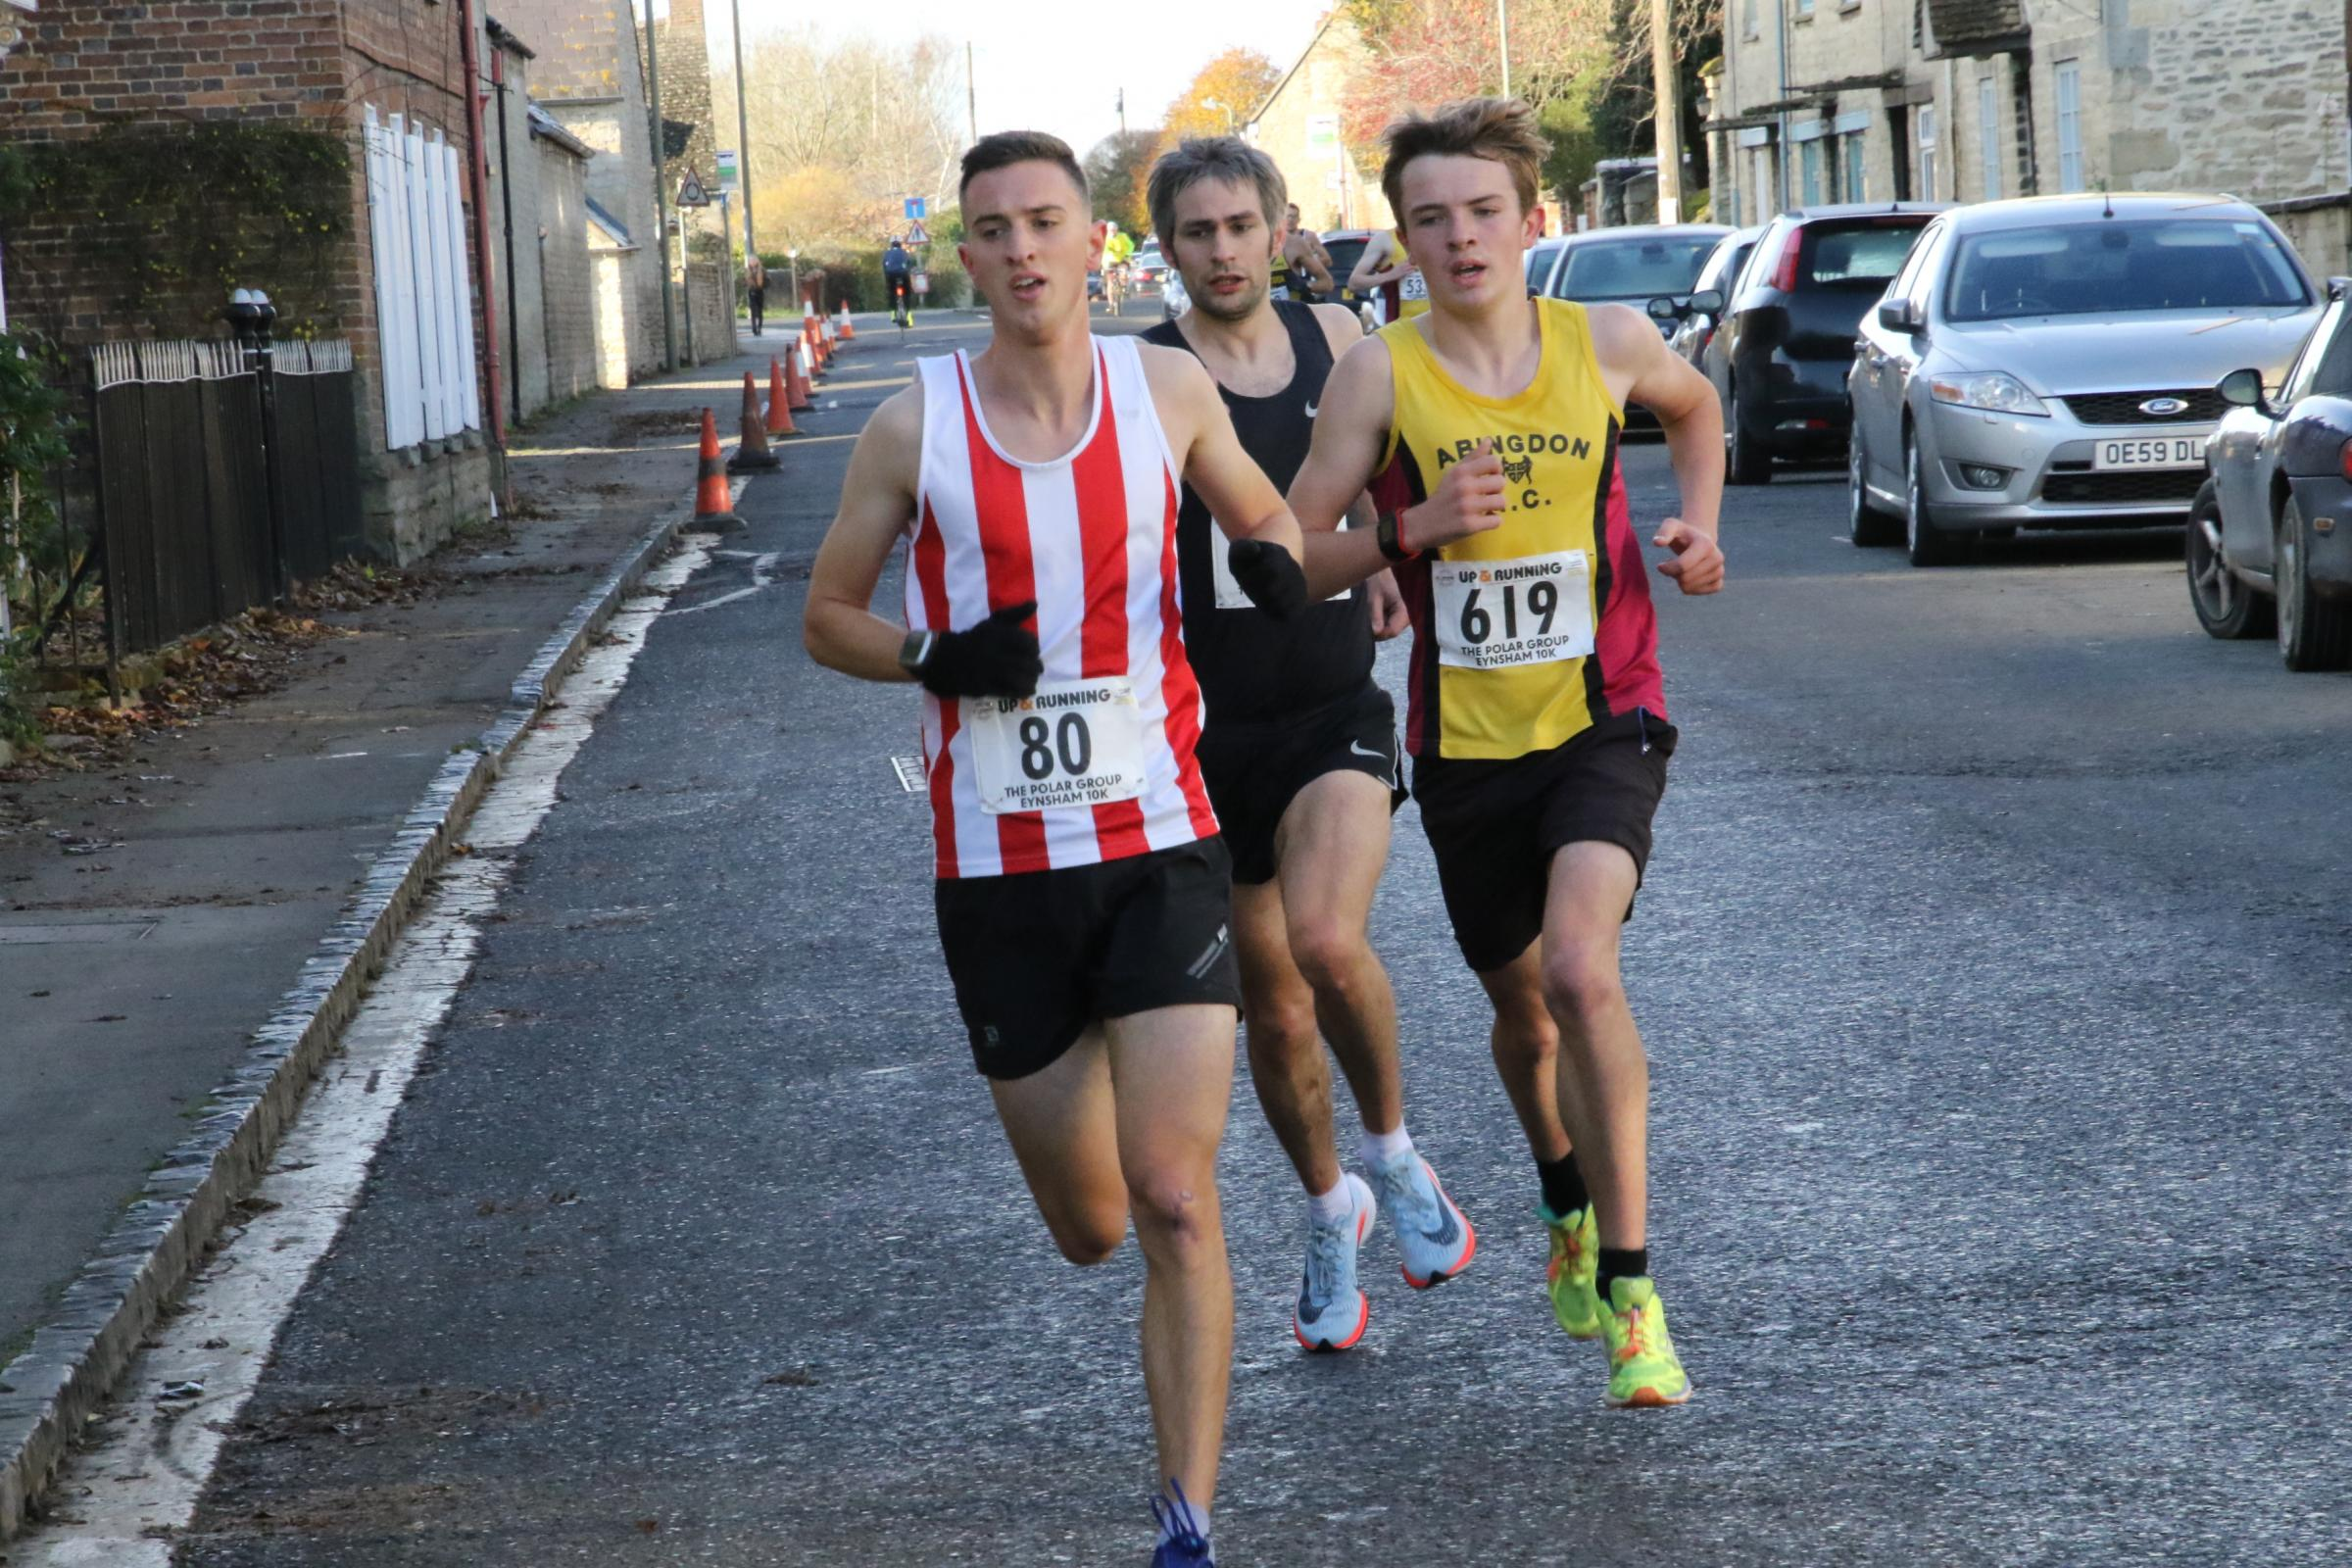 CLOSE: Matthieu Marshall (80) leads Abingdon's Jack Shayler (619) as the pair battled for the lead at the Eynsham 10k Picture: Barry Cornelius